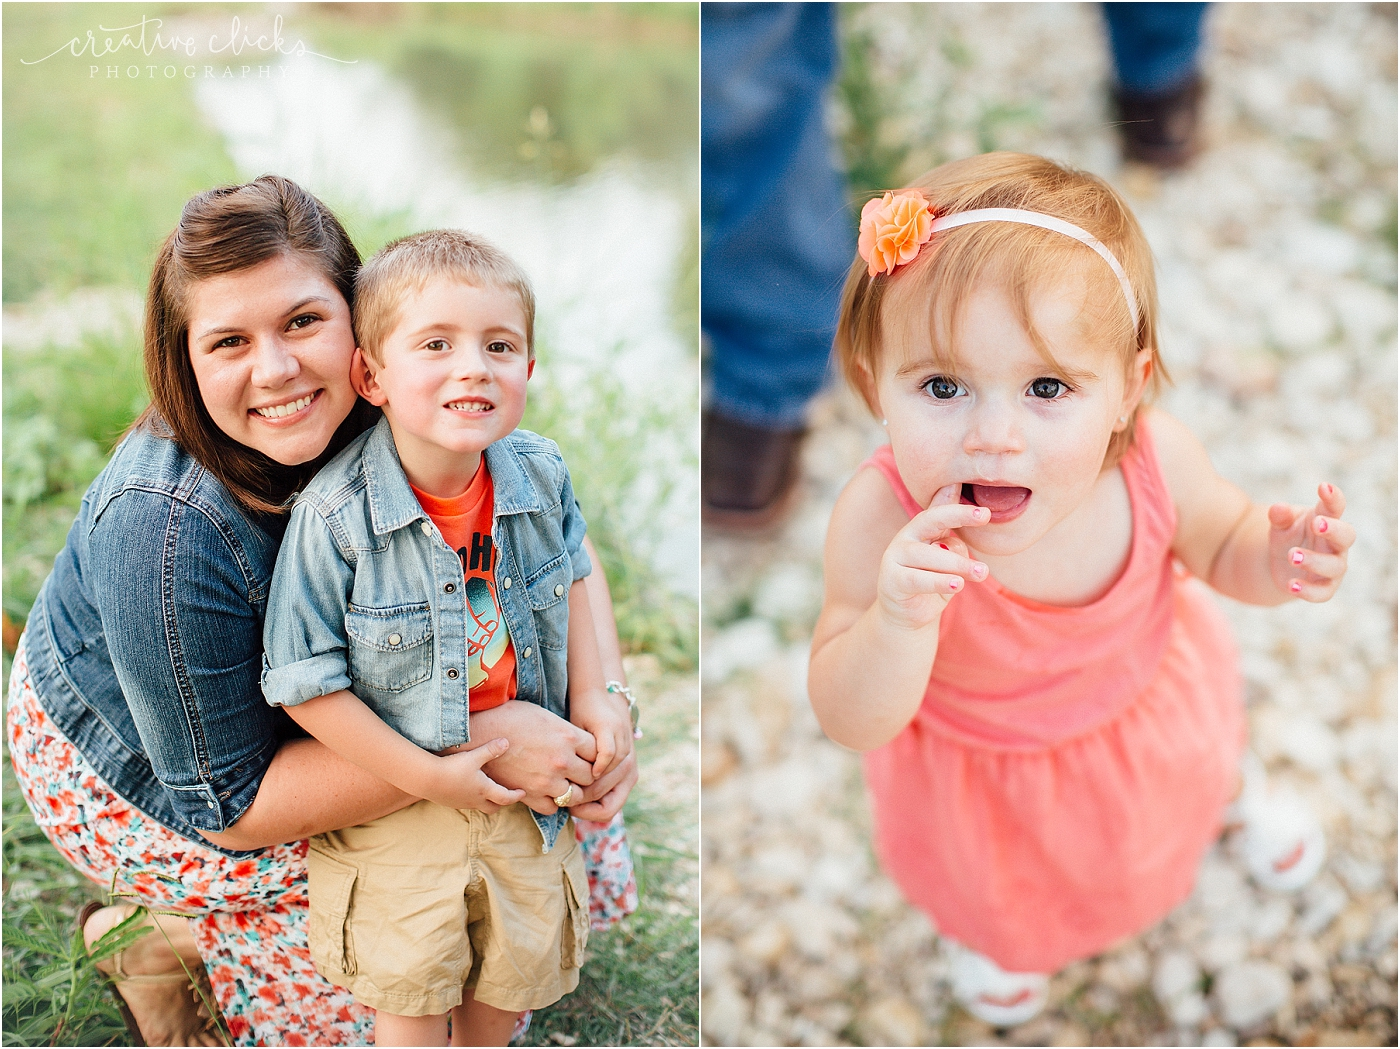 Salado_Creek_Outdoor_Family_Session_31